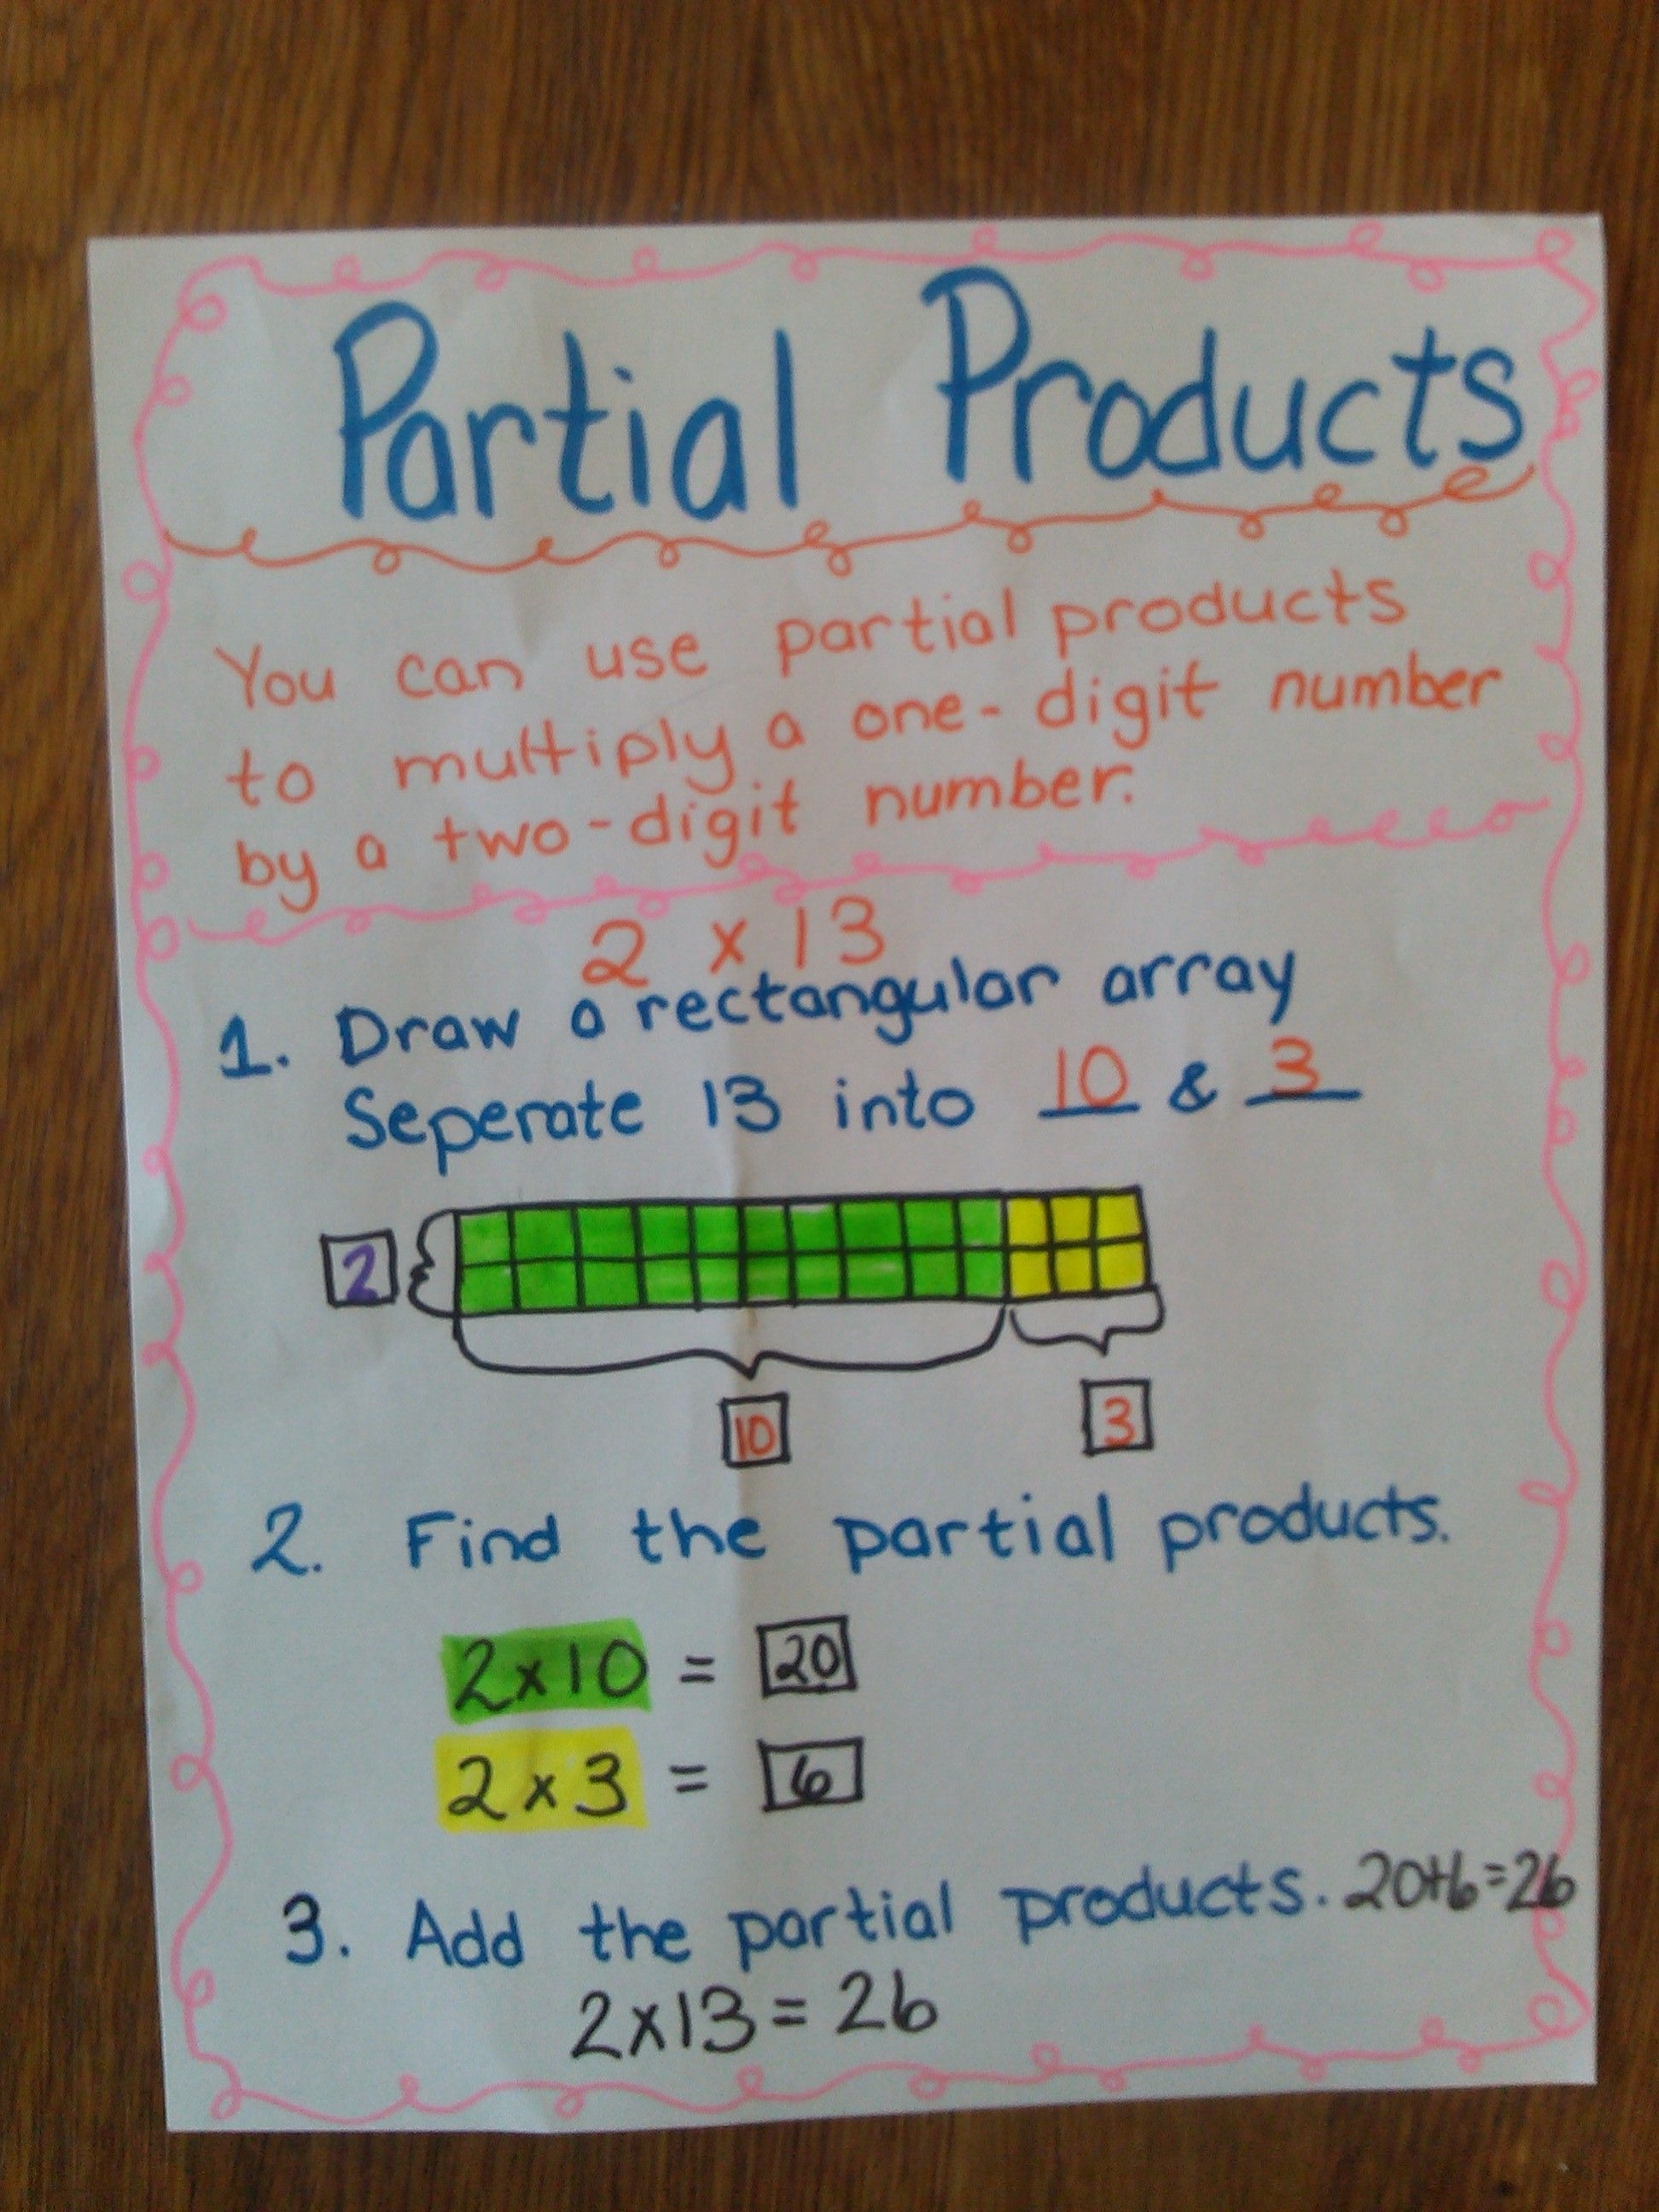 Partial Products Anchor Chart   Partial products [ 2592 x 1944 Pixel ]